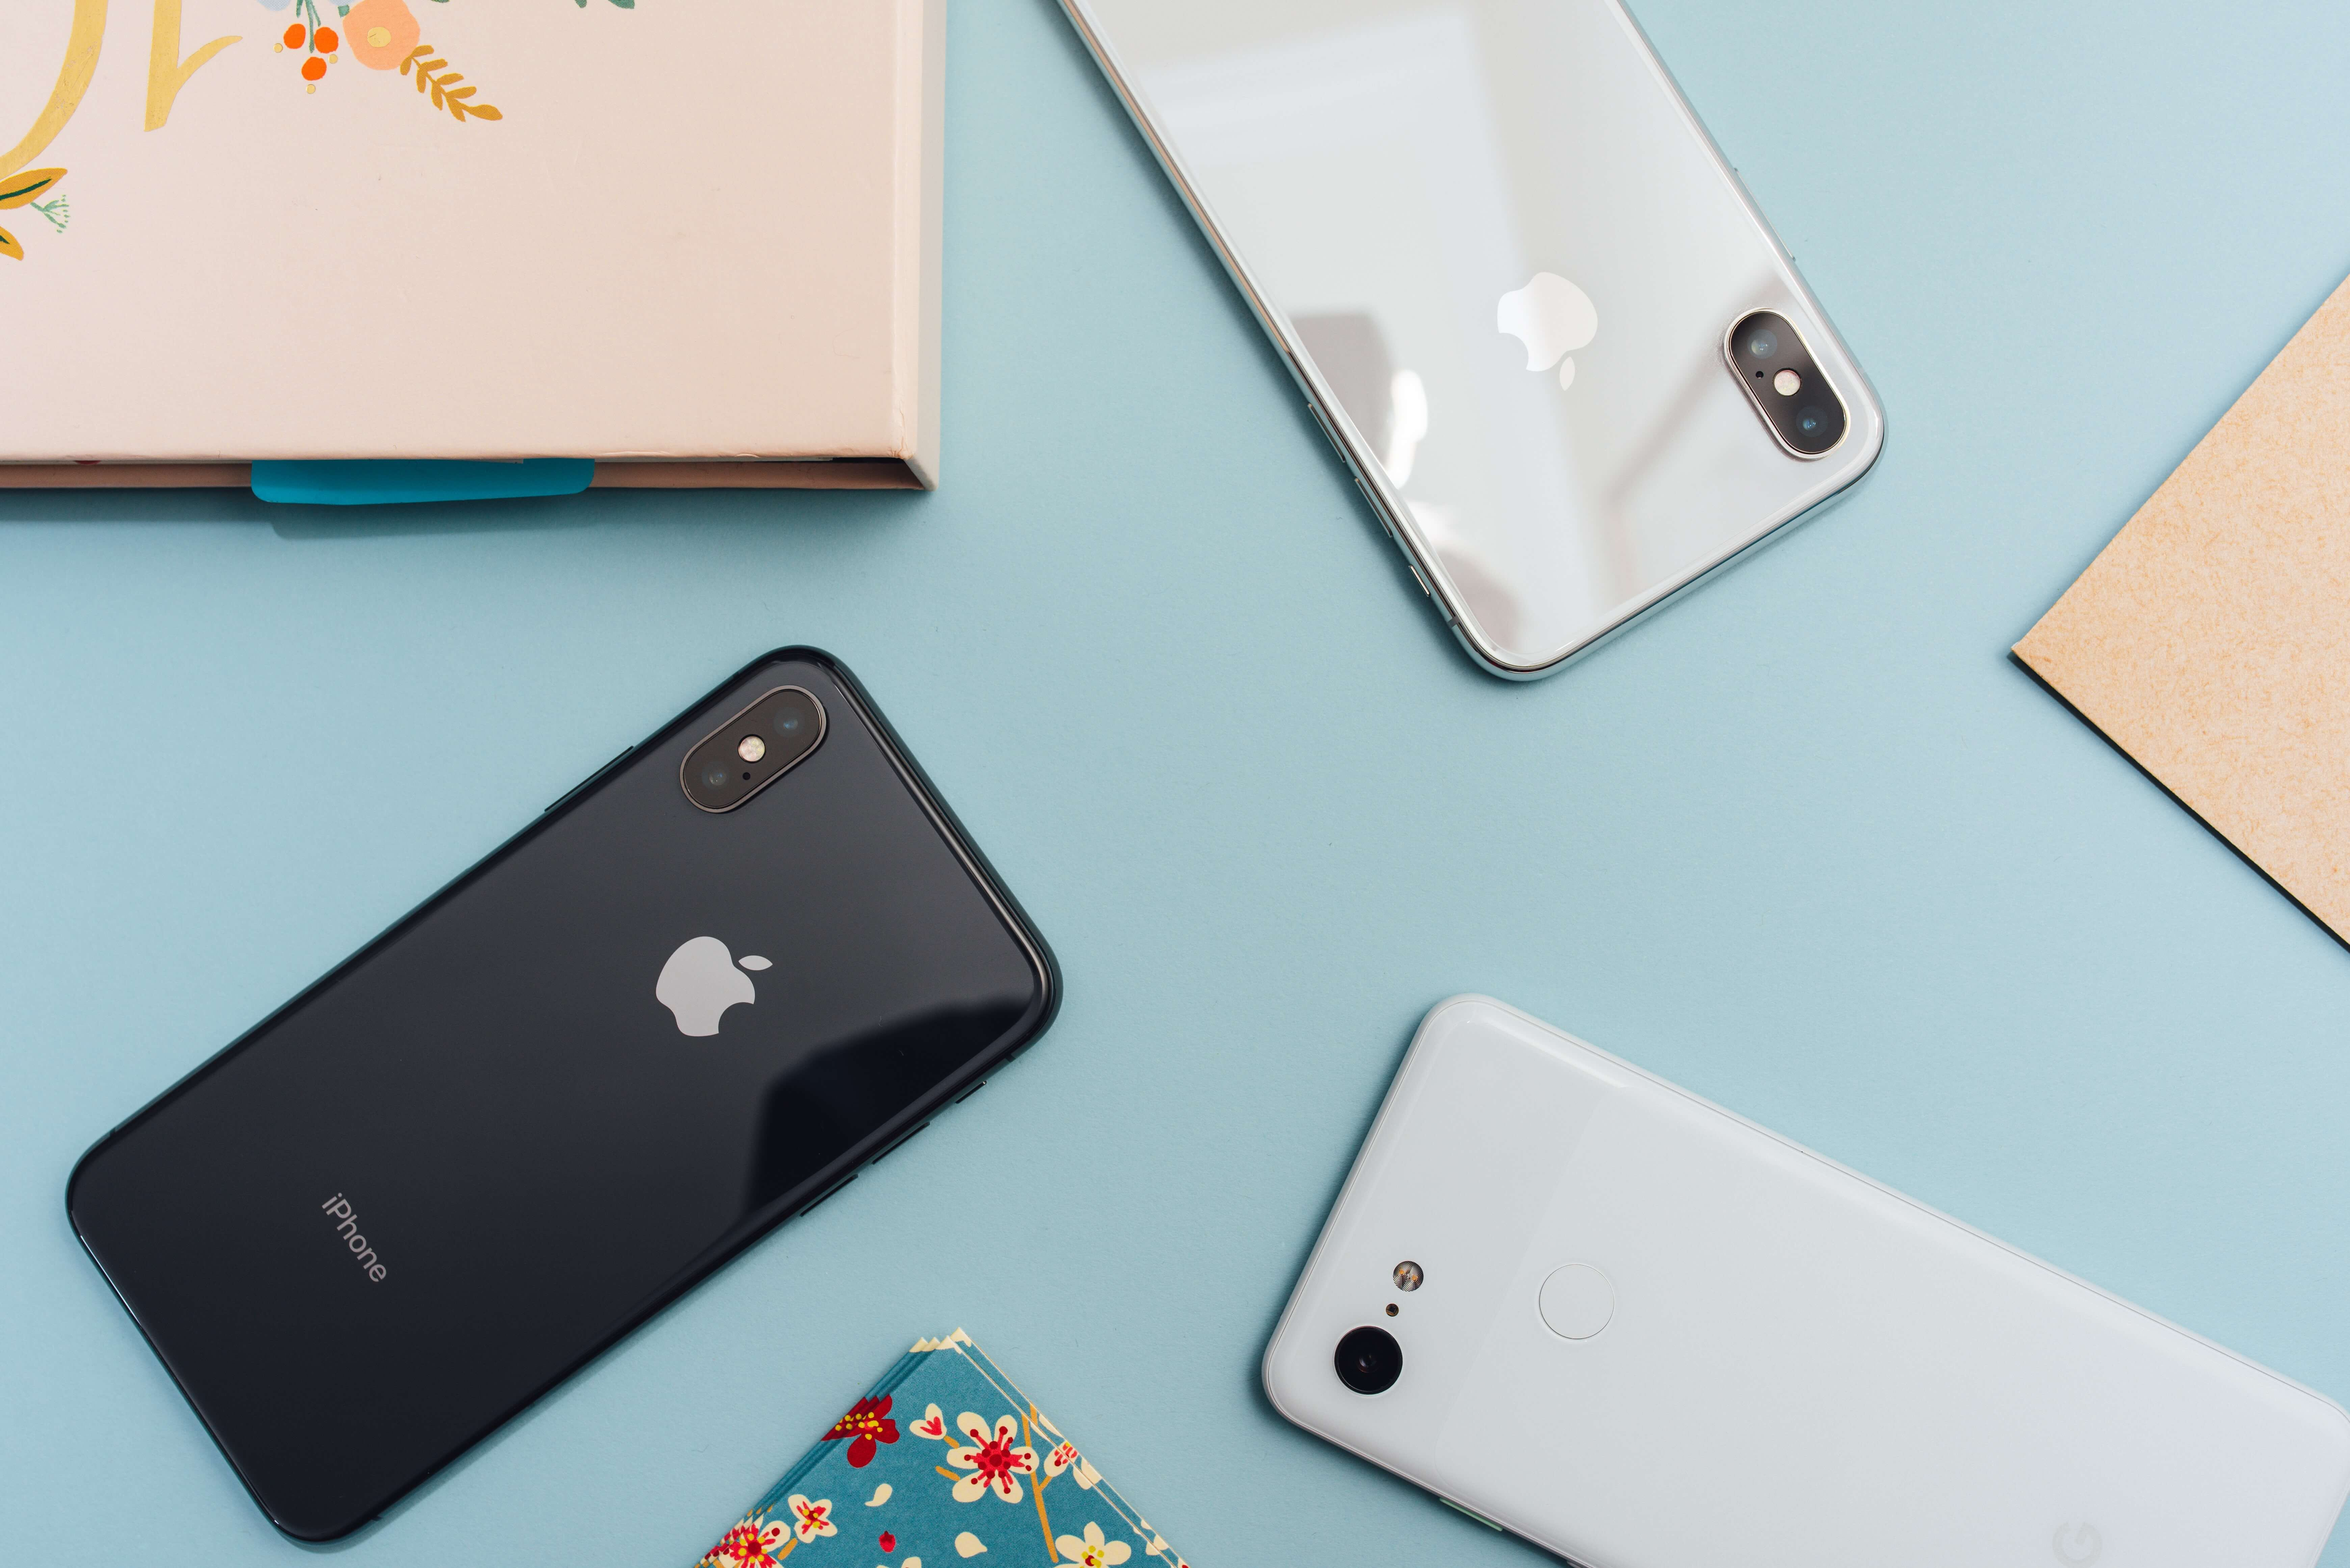 2020: A Strange Year for iPhone Pricing